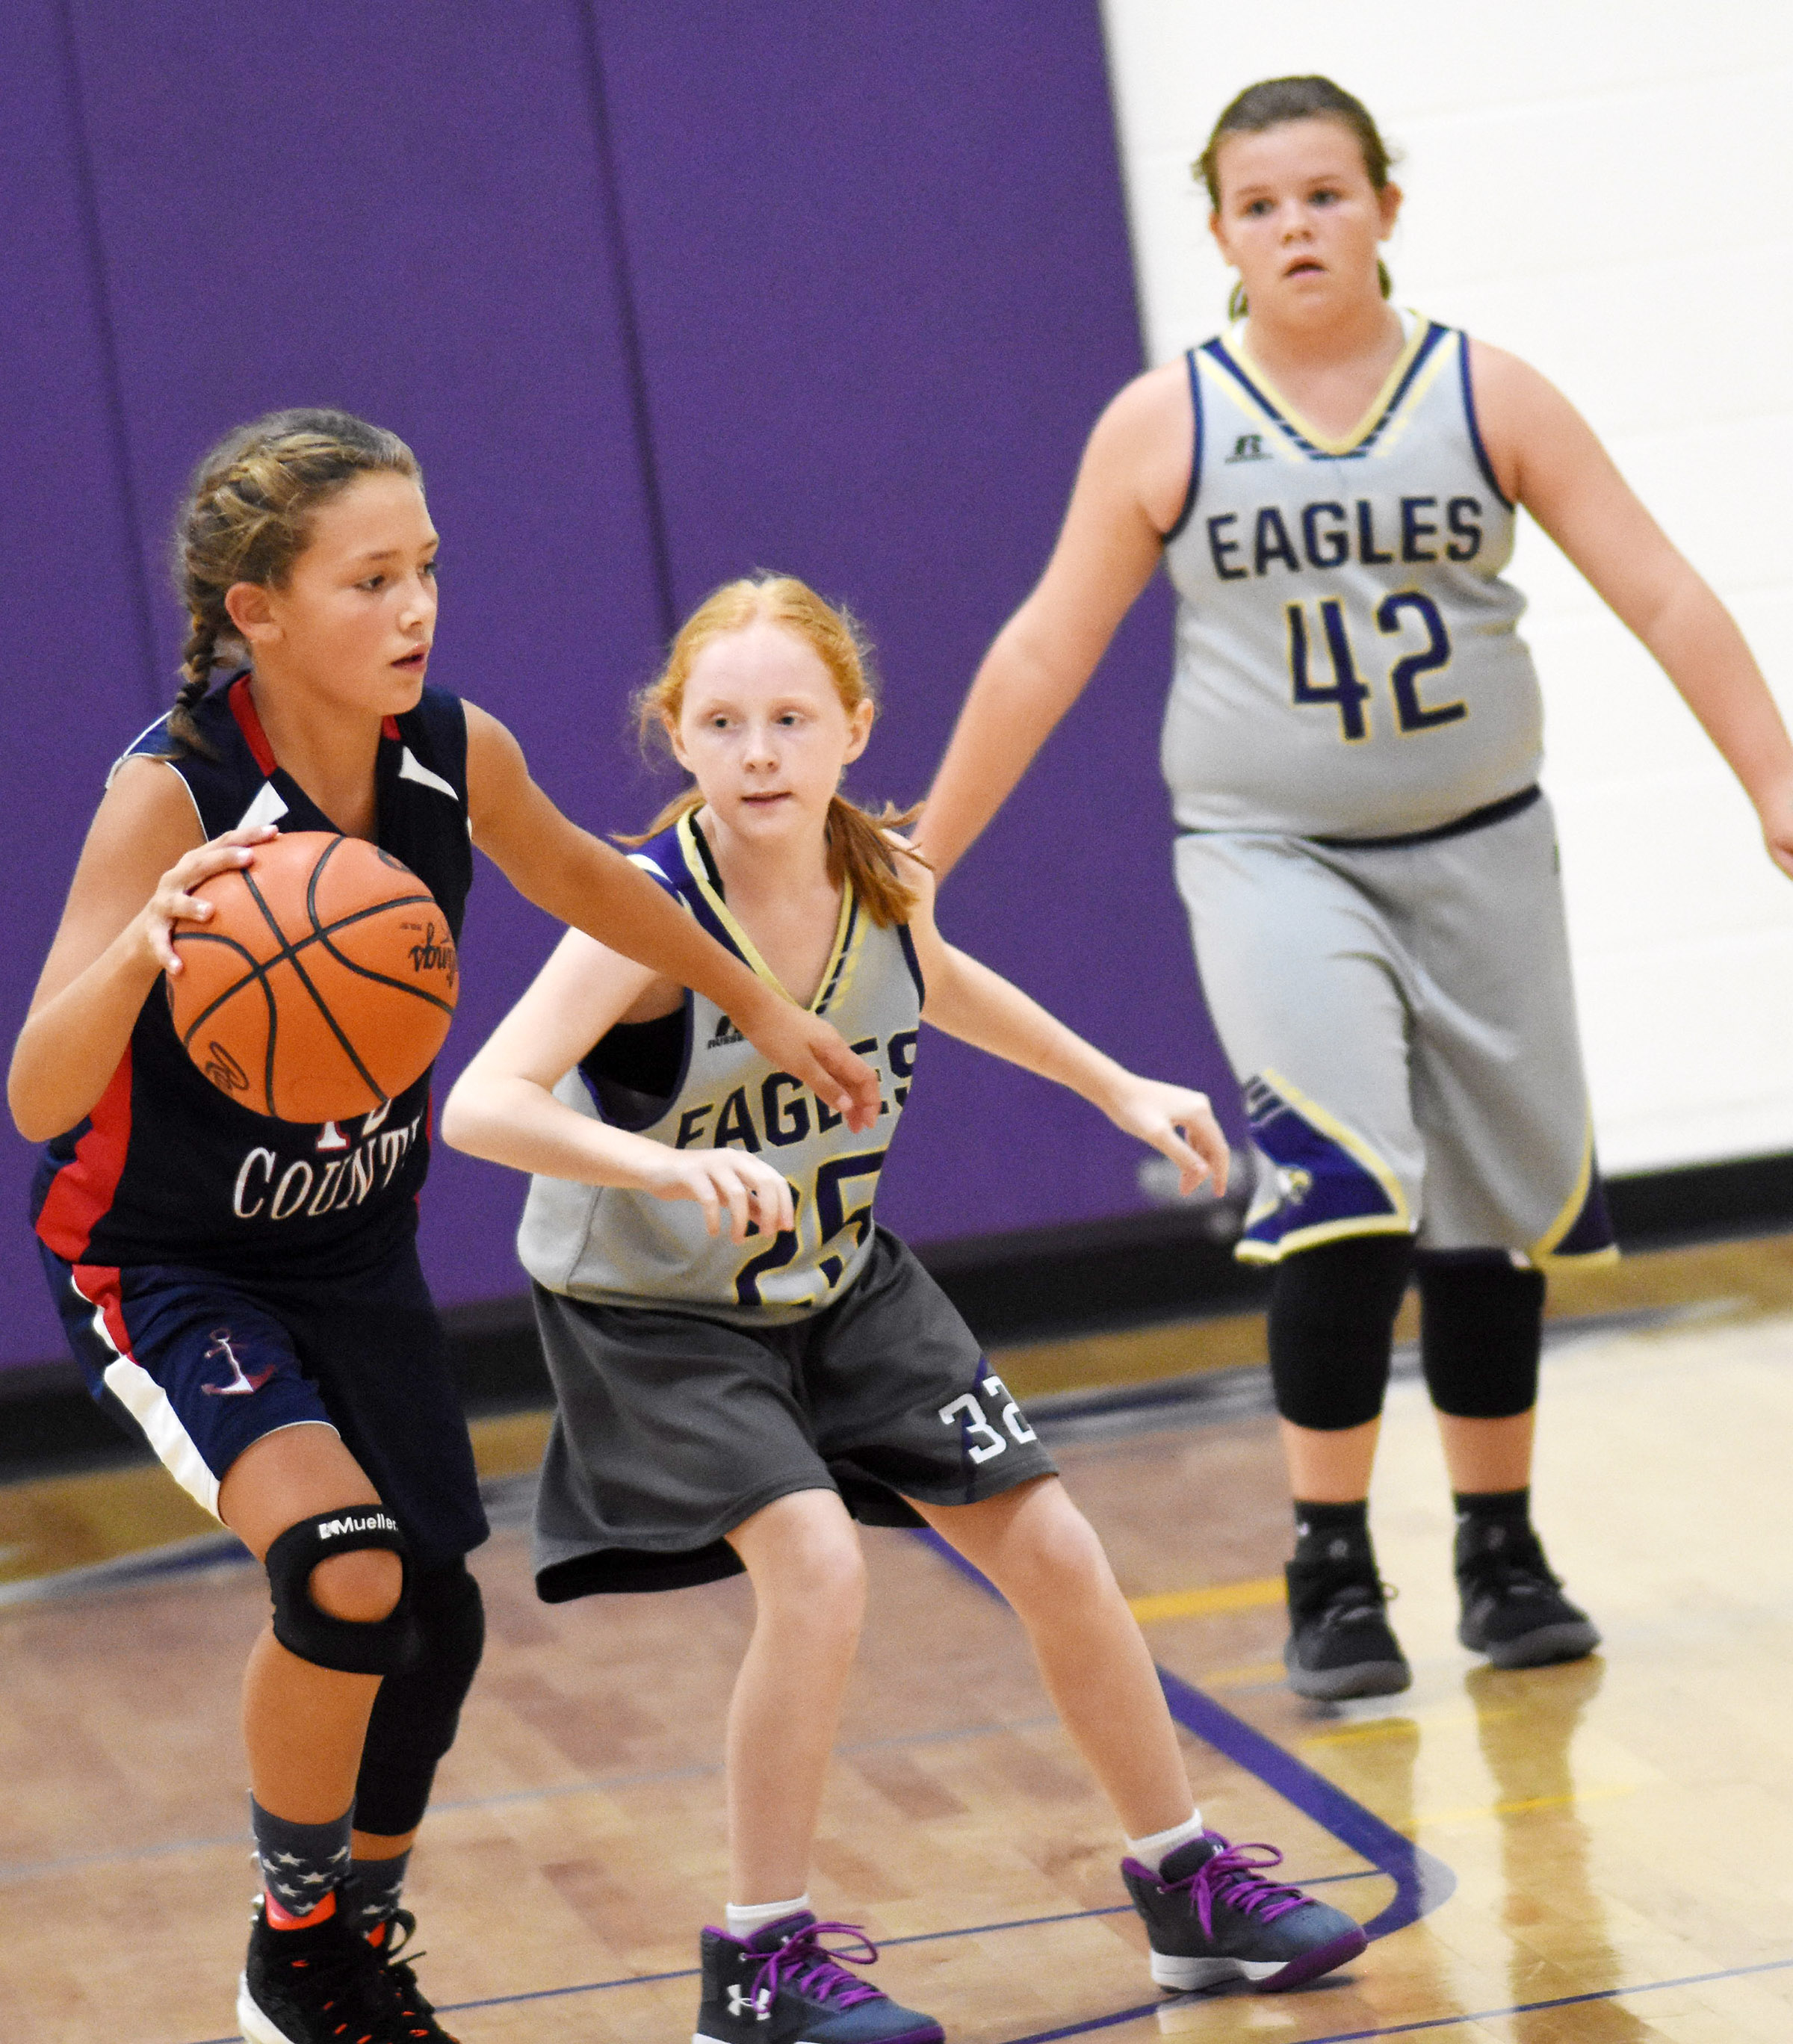 Campbellsville Elementary School fifth-grader Nora Harris fights for the ball.